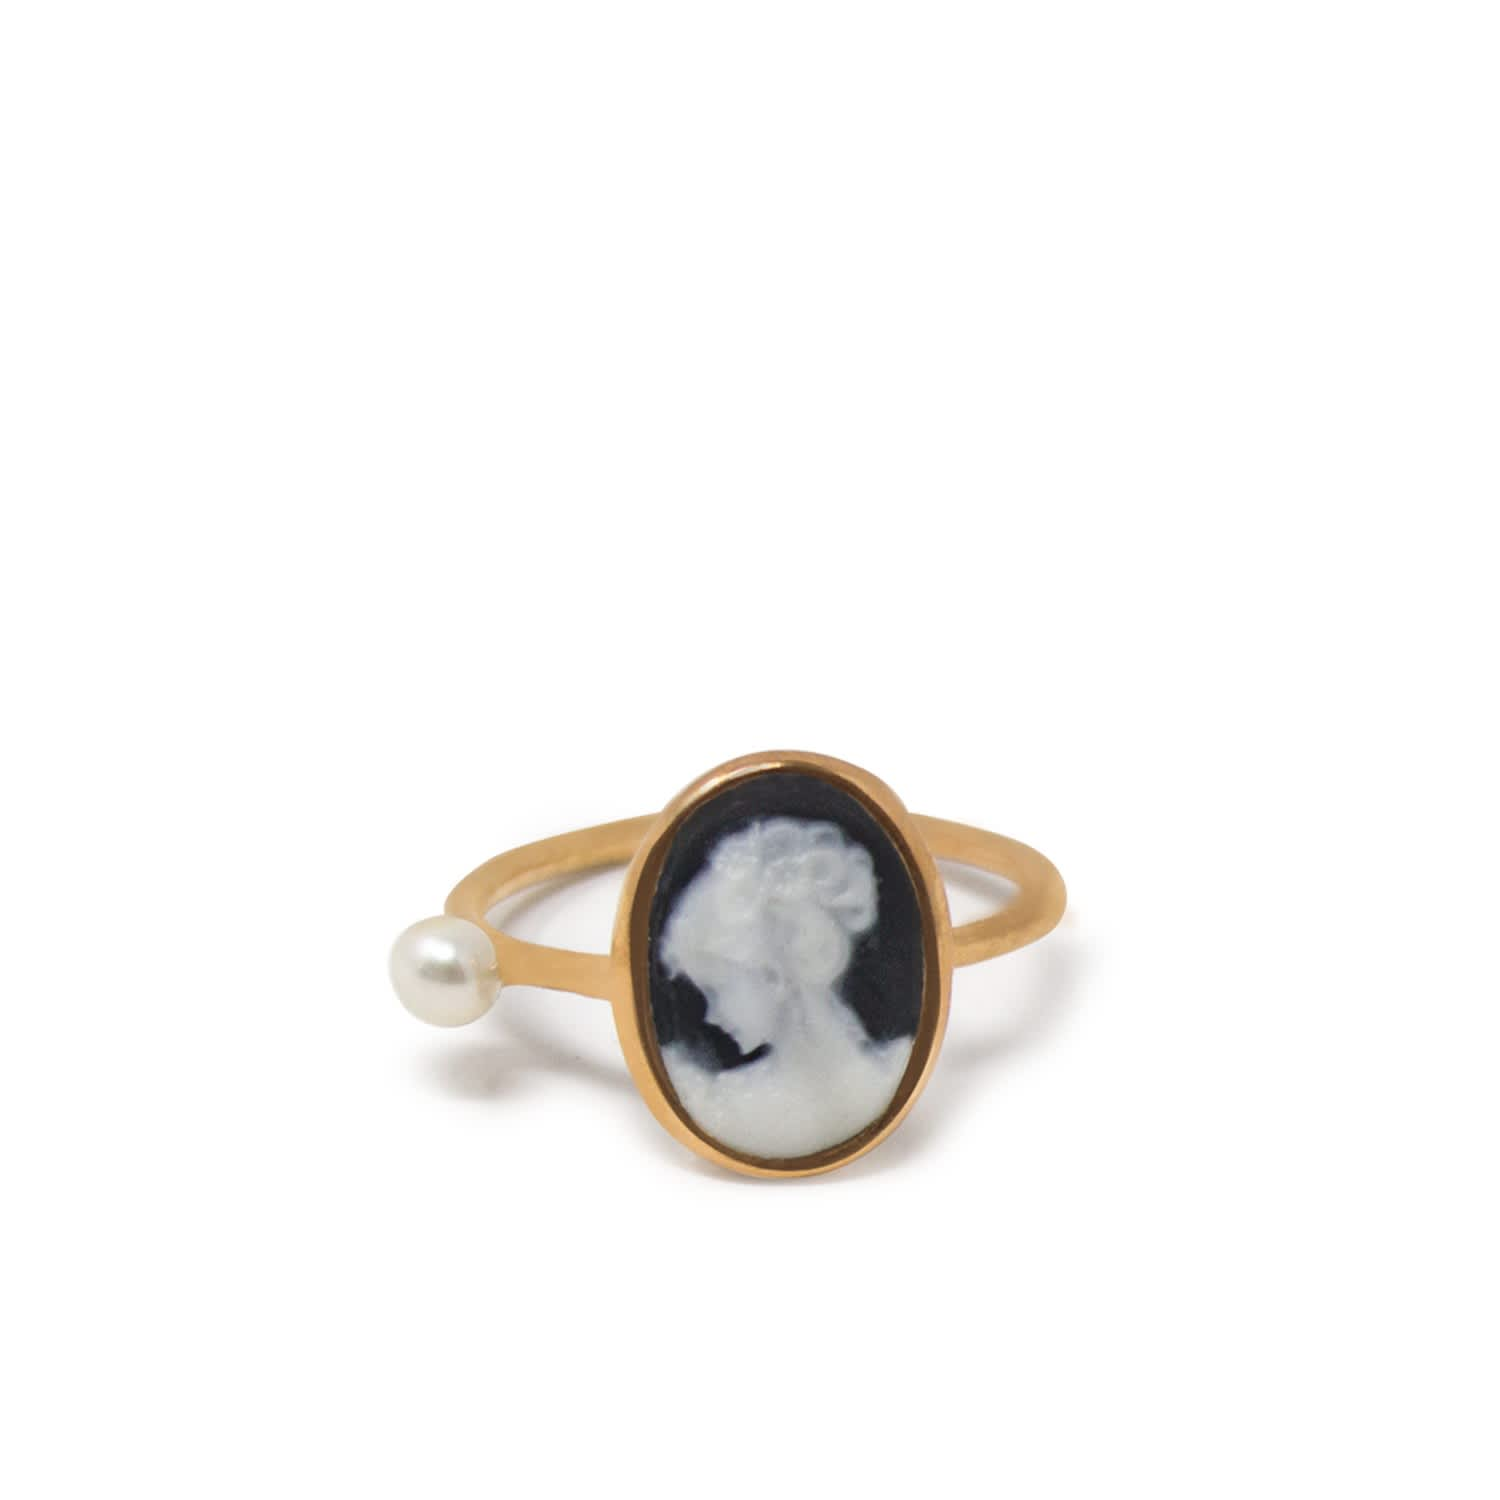 Rose Gold Plated Black Mini Cameo Pearl Ring P Uk Vintouch Italy Wolf Badger